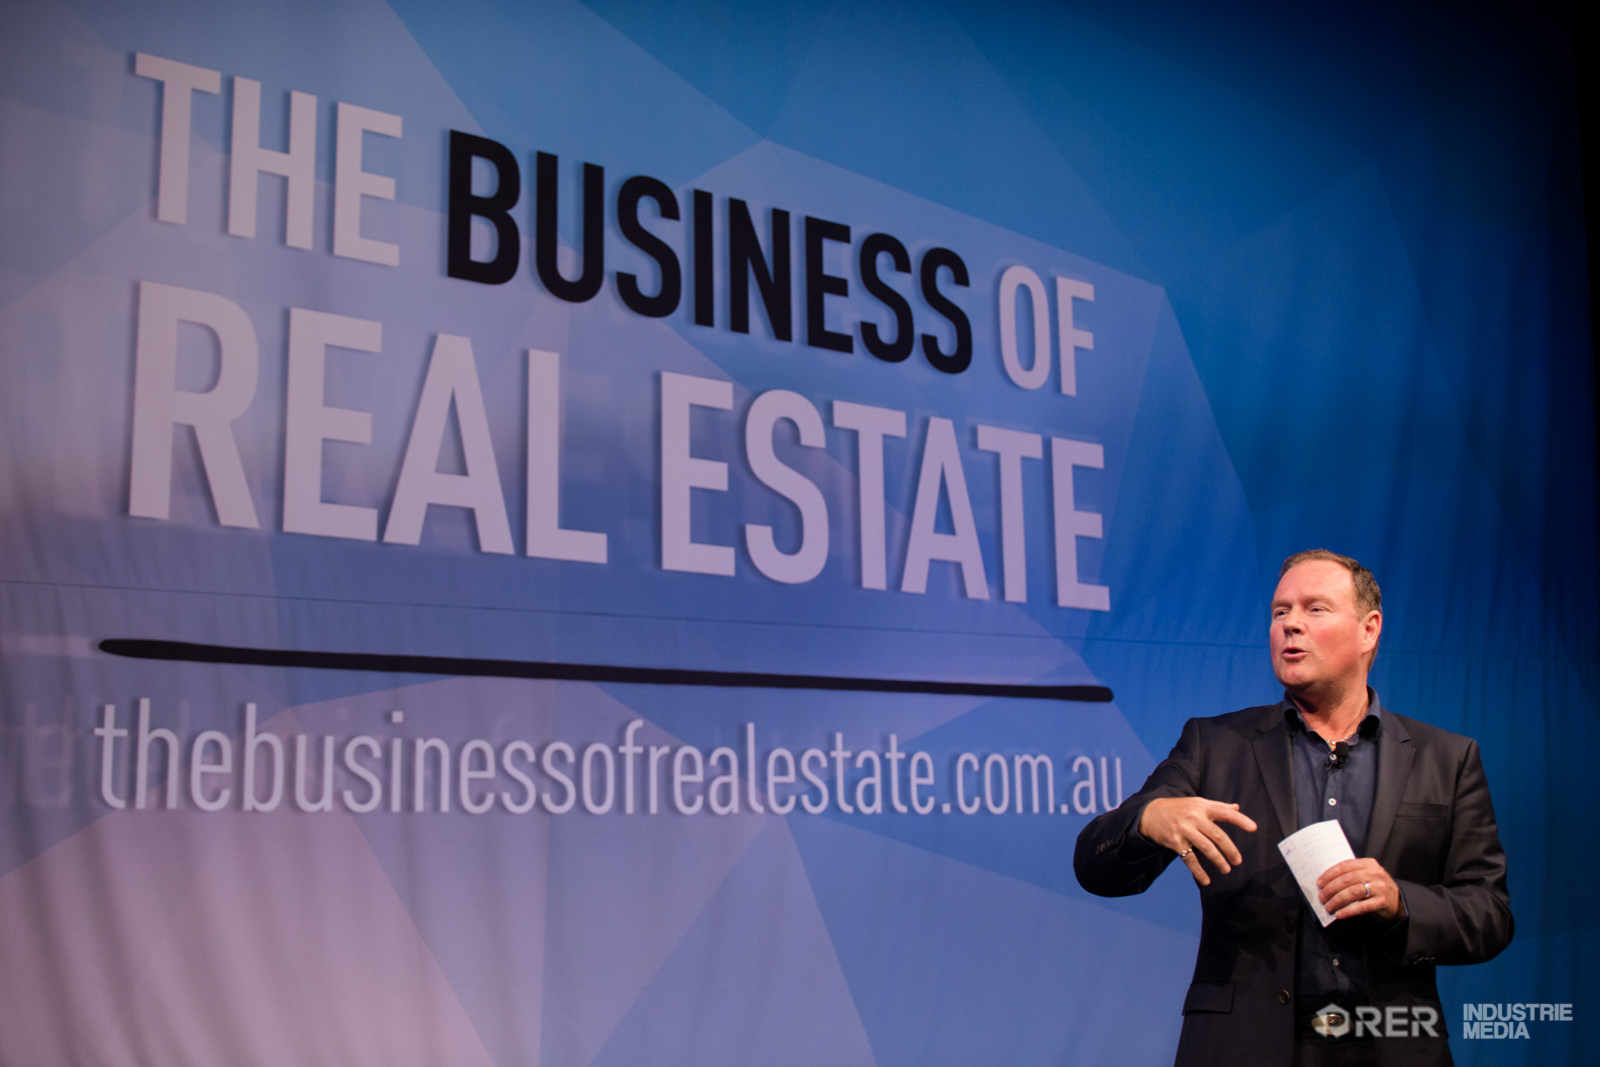 http://www.thebusinessofrealestate.com.au/wp-content/uploads/2016/09/RER_BUSINESS_OF_REAL_ESTATE_DAY_2-31.jpg